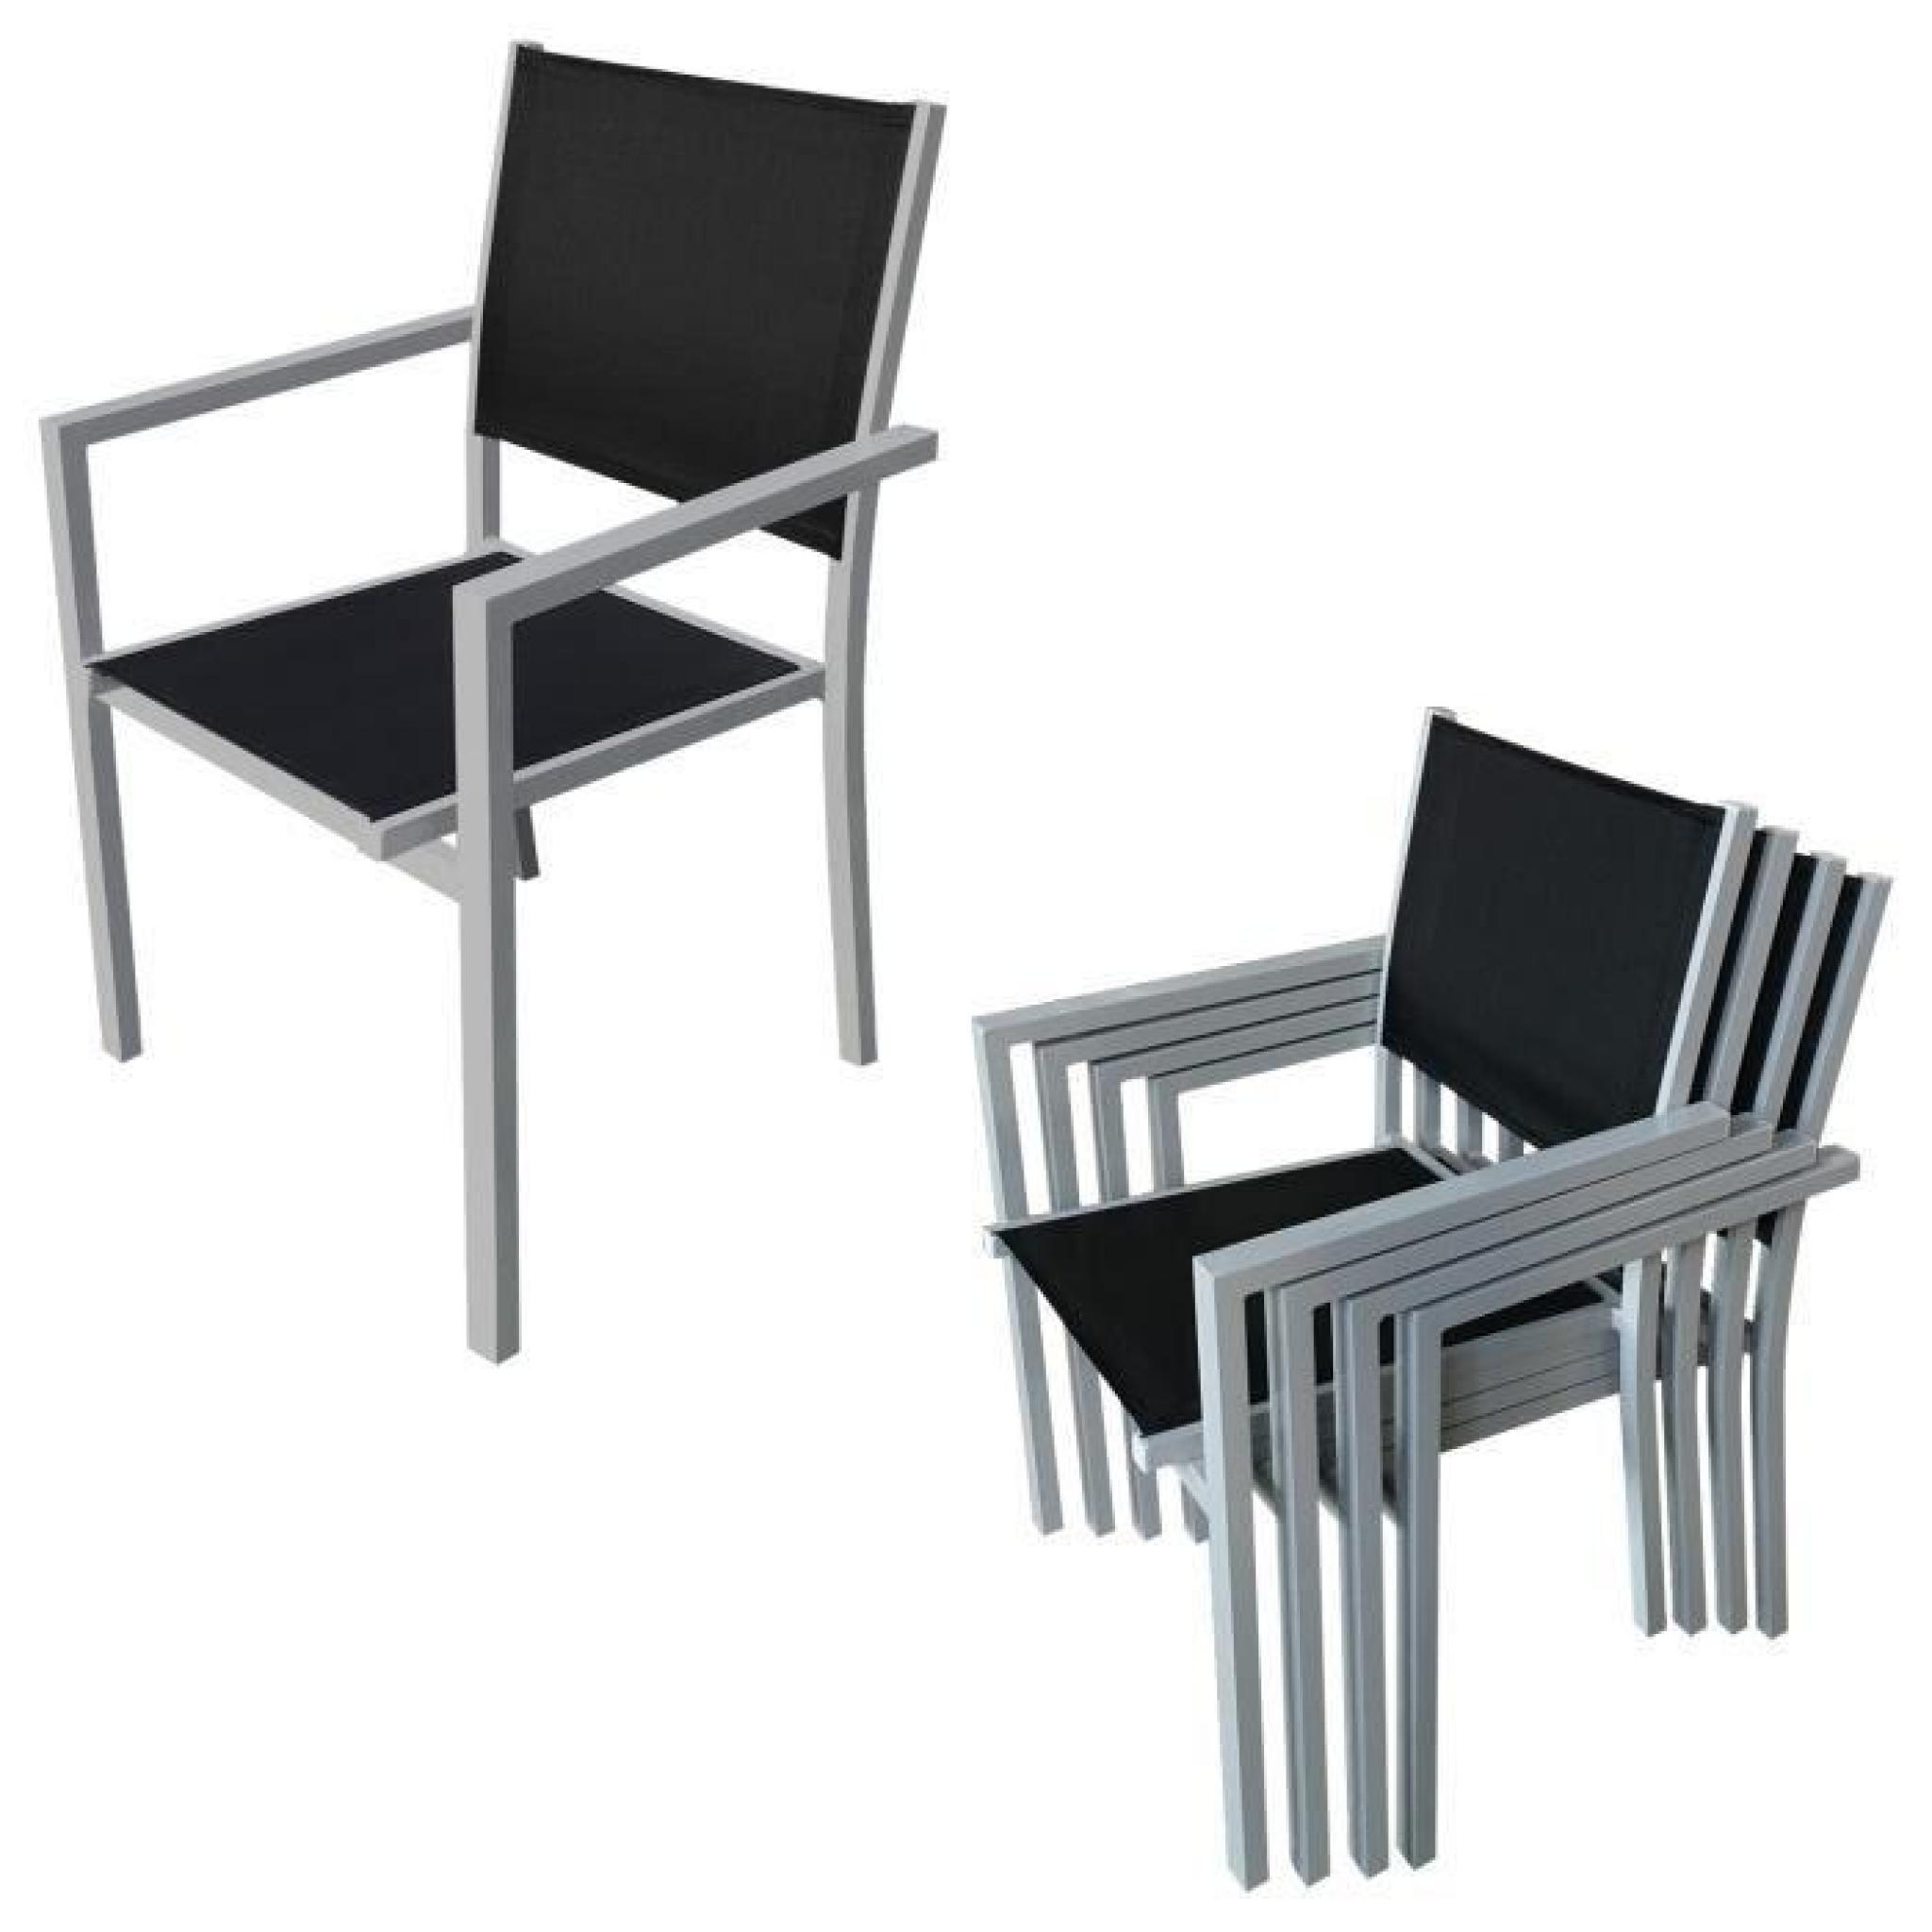 salon de jardin cagliari en textil ne noir 8 places aluminium gris achat vente salon de. Black Bedroom Furniture Sets. Home Design Ideas